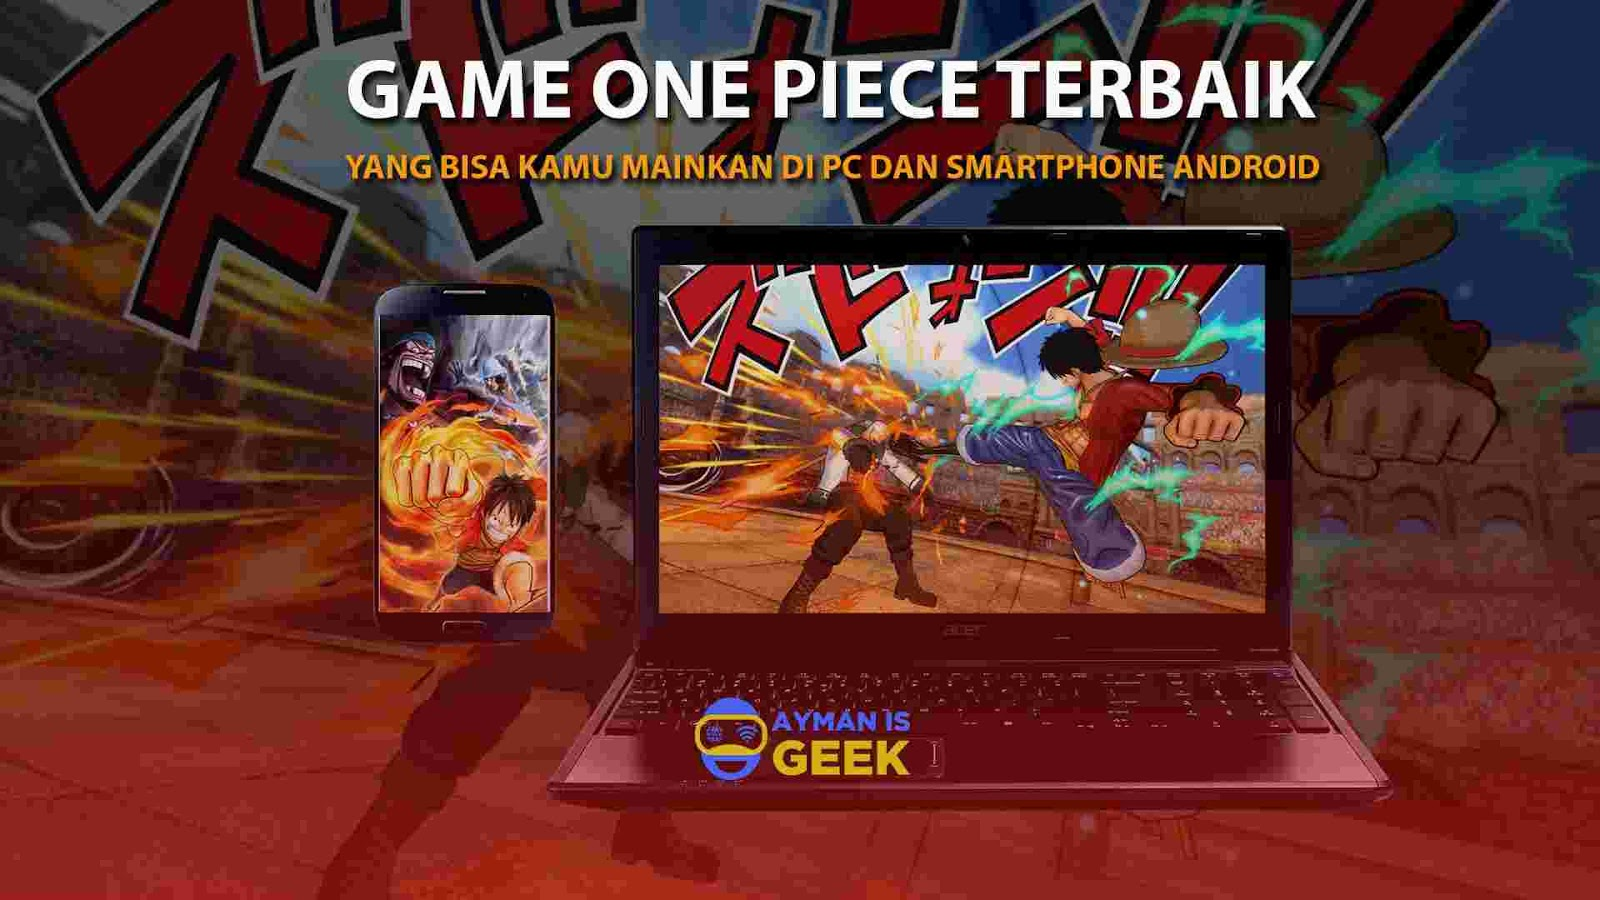 6 Game One Piece PC / Laptop dan Smartphone Android Terbaru dan Terbaik